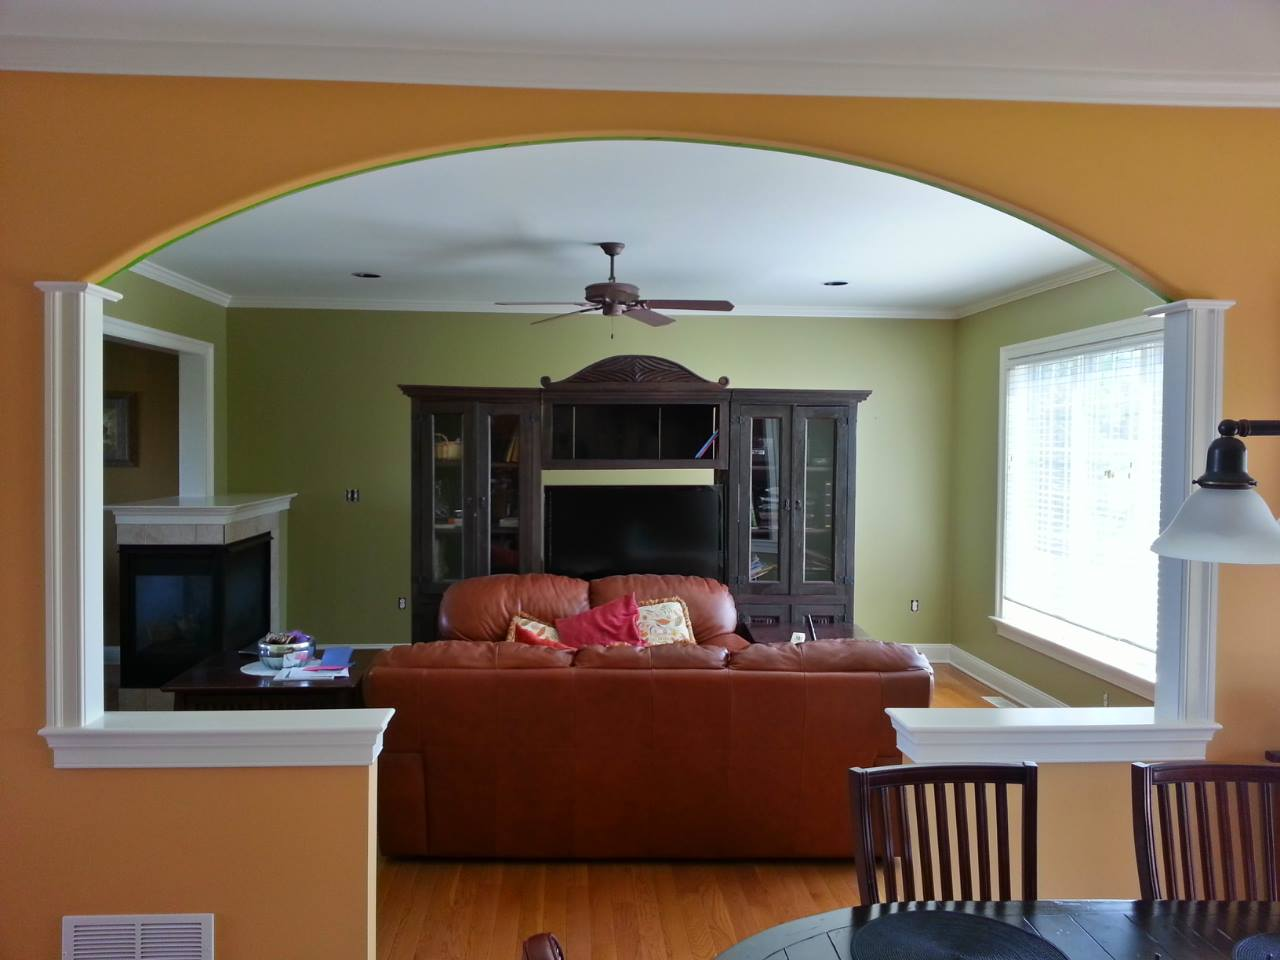 Just Add Paint house painting ideas in Camp Hill, PA 17011